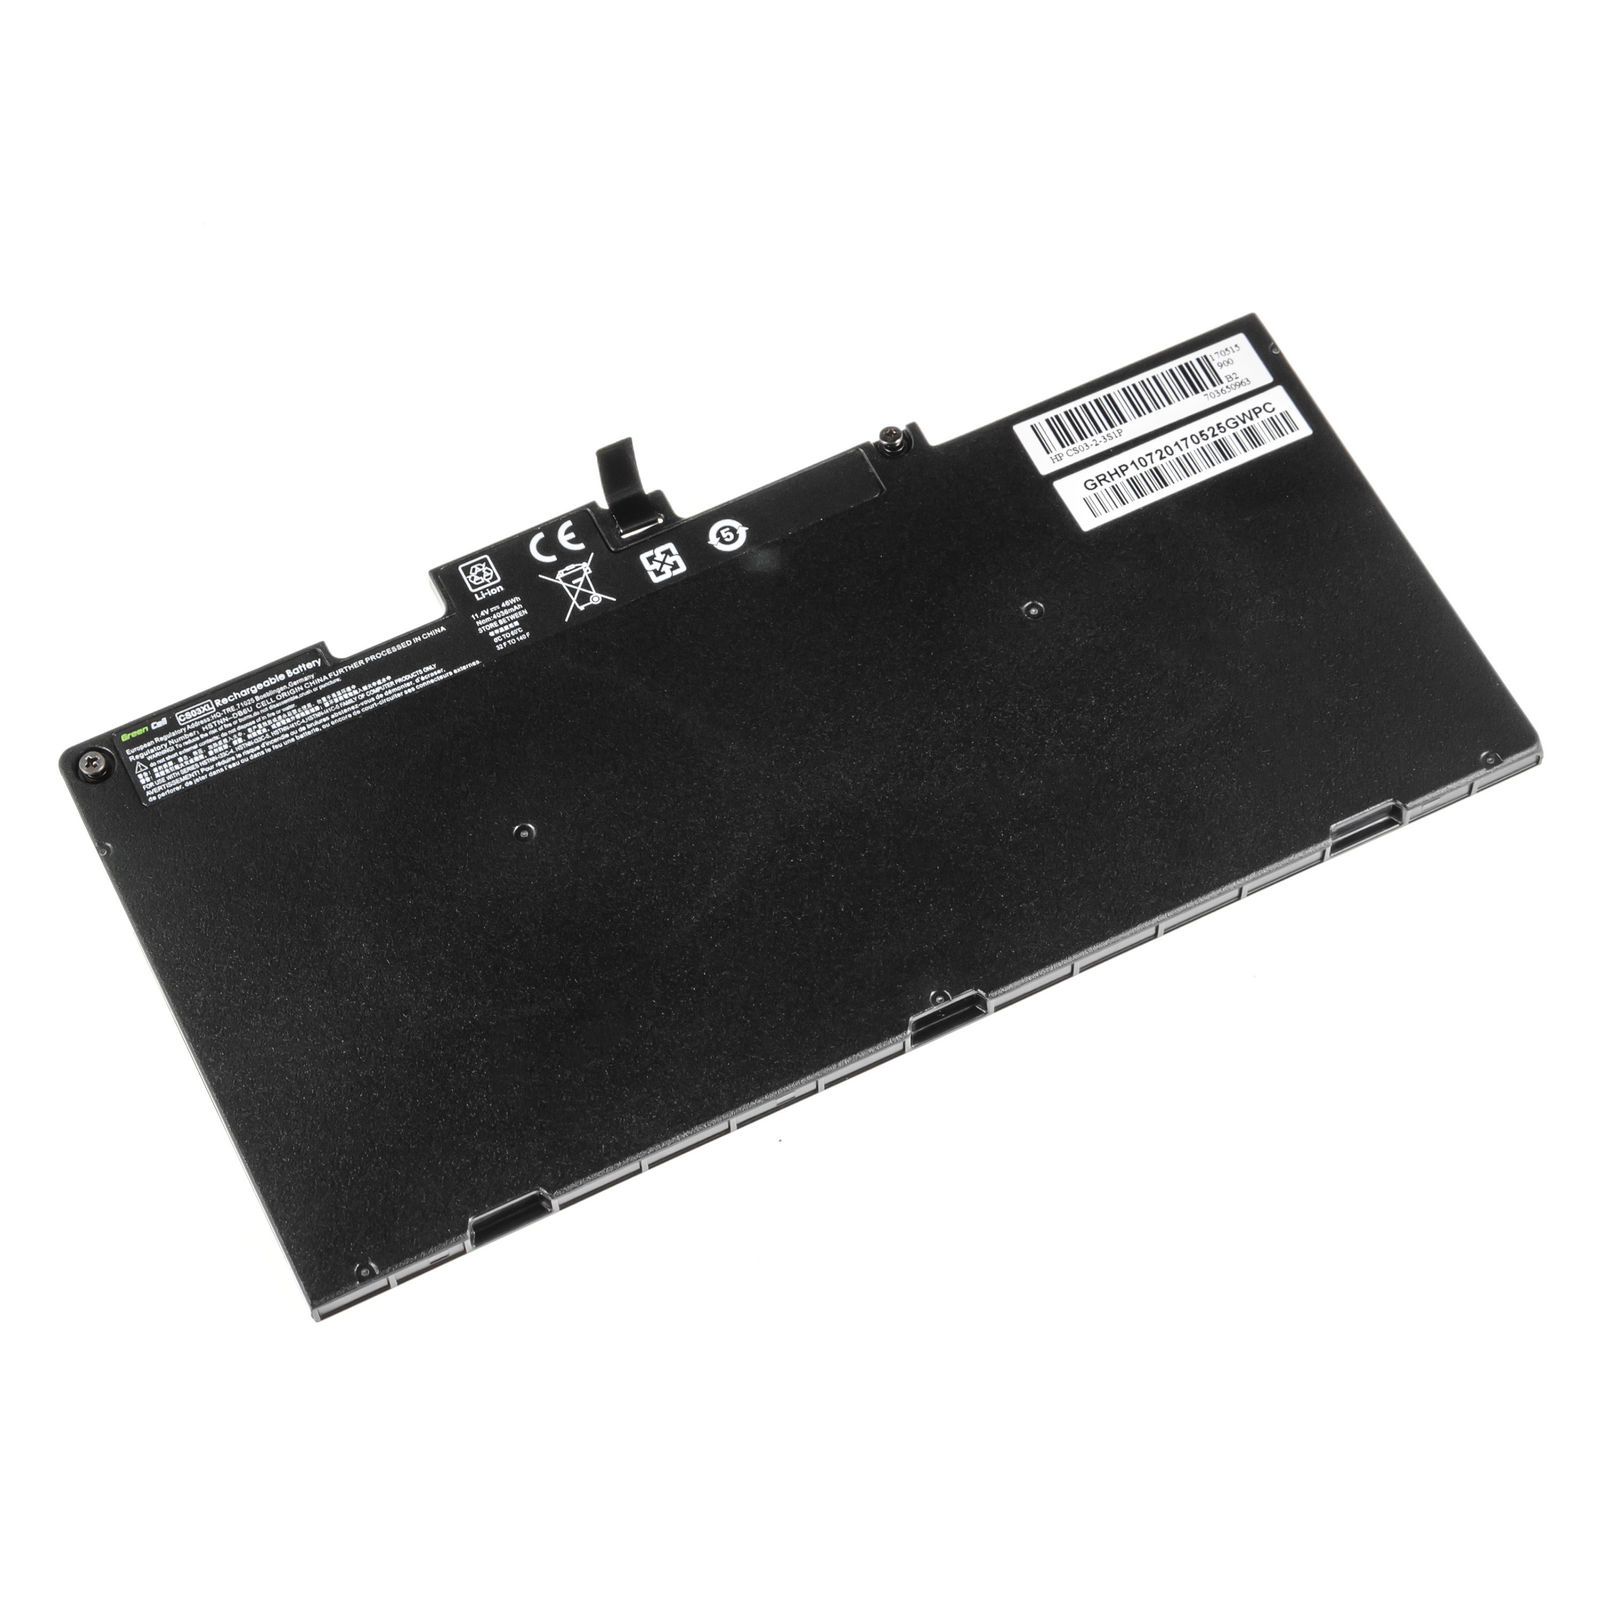 HP CS03XL CSO3 CSO3XL HSTNN-DB6U HSTNN-I33C-4 compatible battery